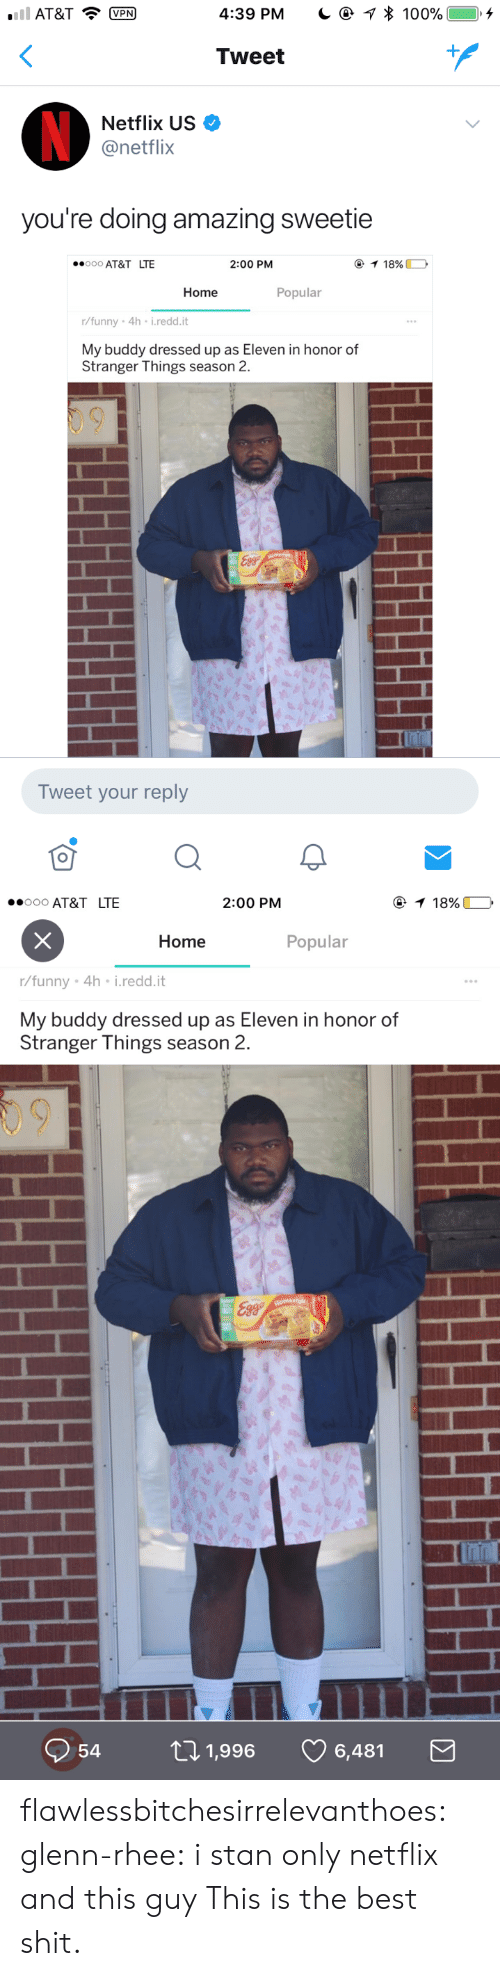 Glenn Rhee: AT&TP  4:39 PM  * 100%  ), +  Tweet  Netflix US  @netflix  you're doing amazing sweetie  000 AT&T LTE  2:00 PM  Home  Popular  r/funny 4h i.redd.it  My buddy dressed up as Eleven in honor of  Stranger Things season 2.  Tweet your reply   ooo AT&T LTE  2:00 PM  Home  Popular  r/funny . 4h-i·reddit  My buddy dressed up as Eleven in honor of  Stranger Things season 2.  09  Q54ロ1,996 6,481 flawlessbitchesirrelevanthoes: glenn-rhee:  i stan only netflix and this guy  This is the best shit.